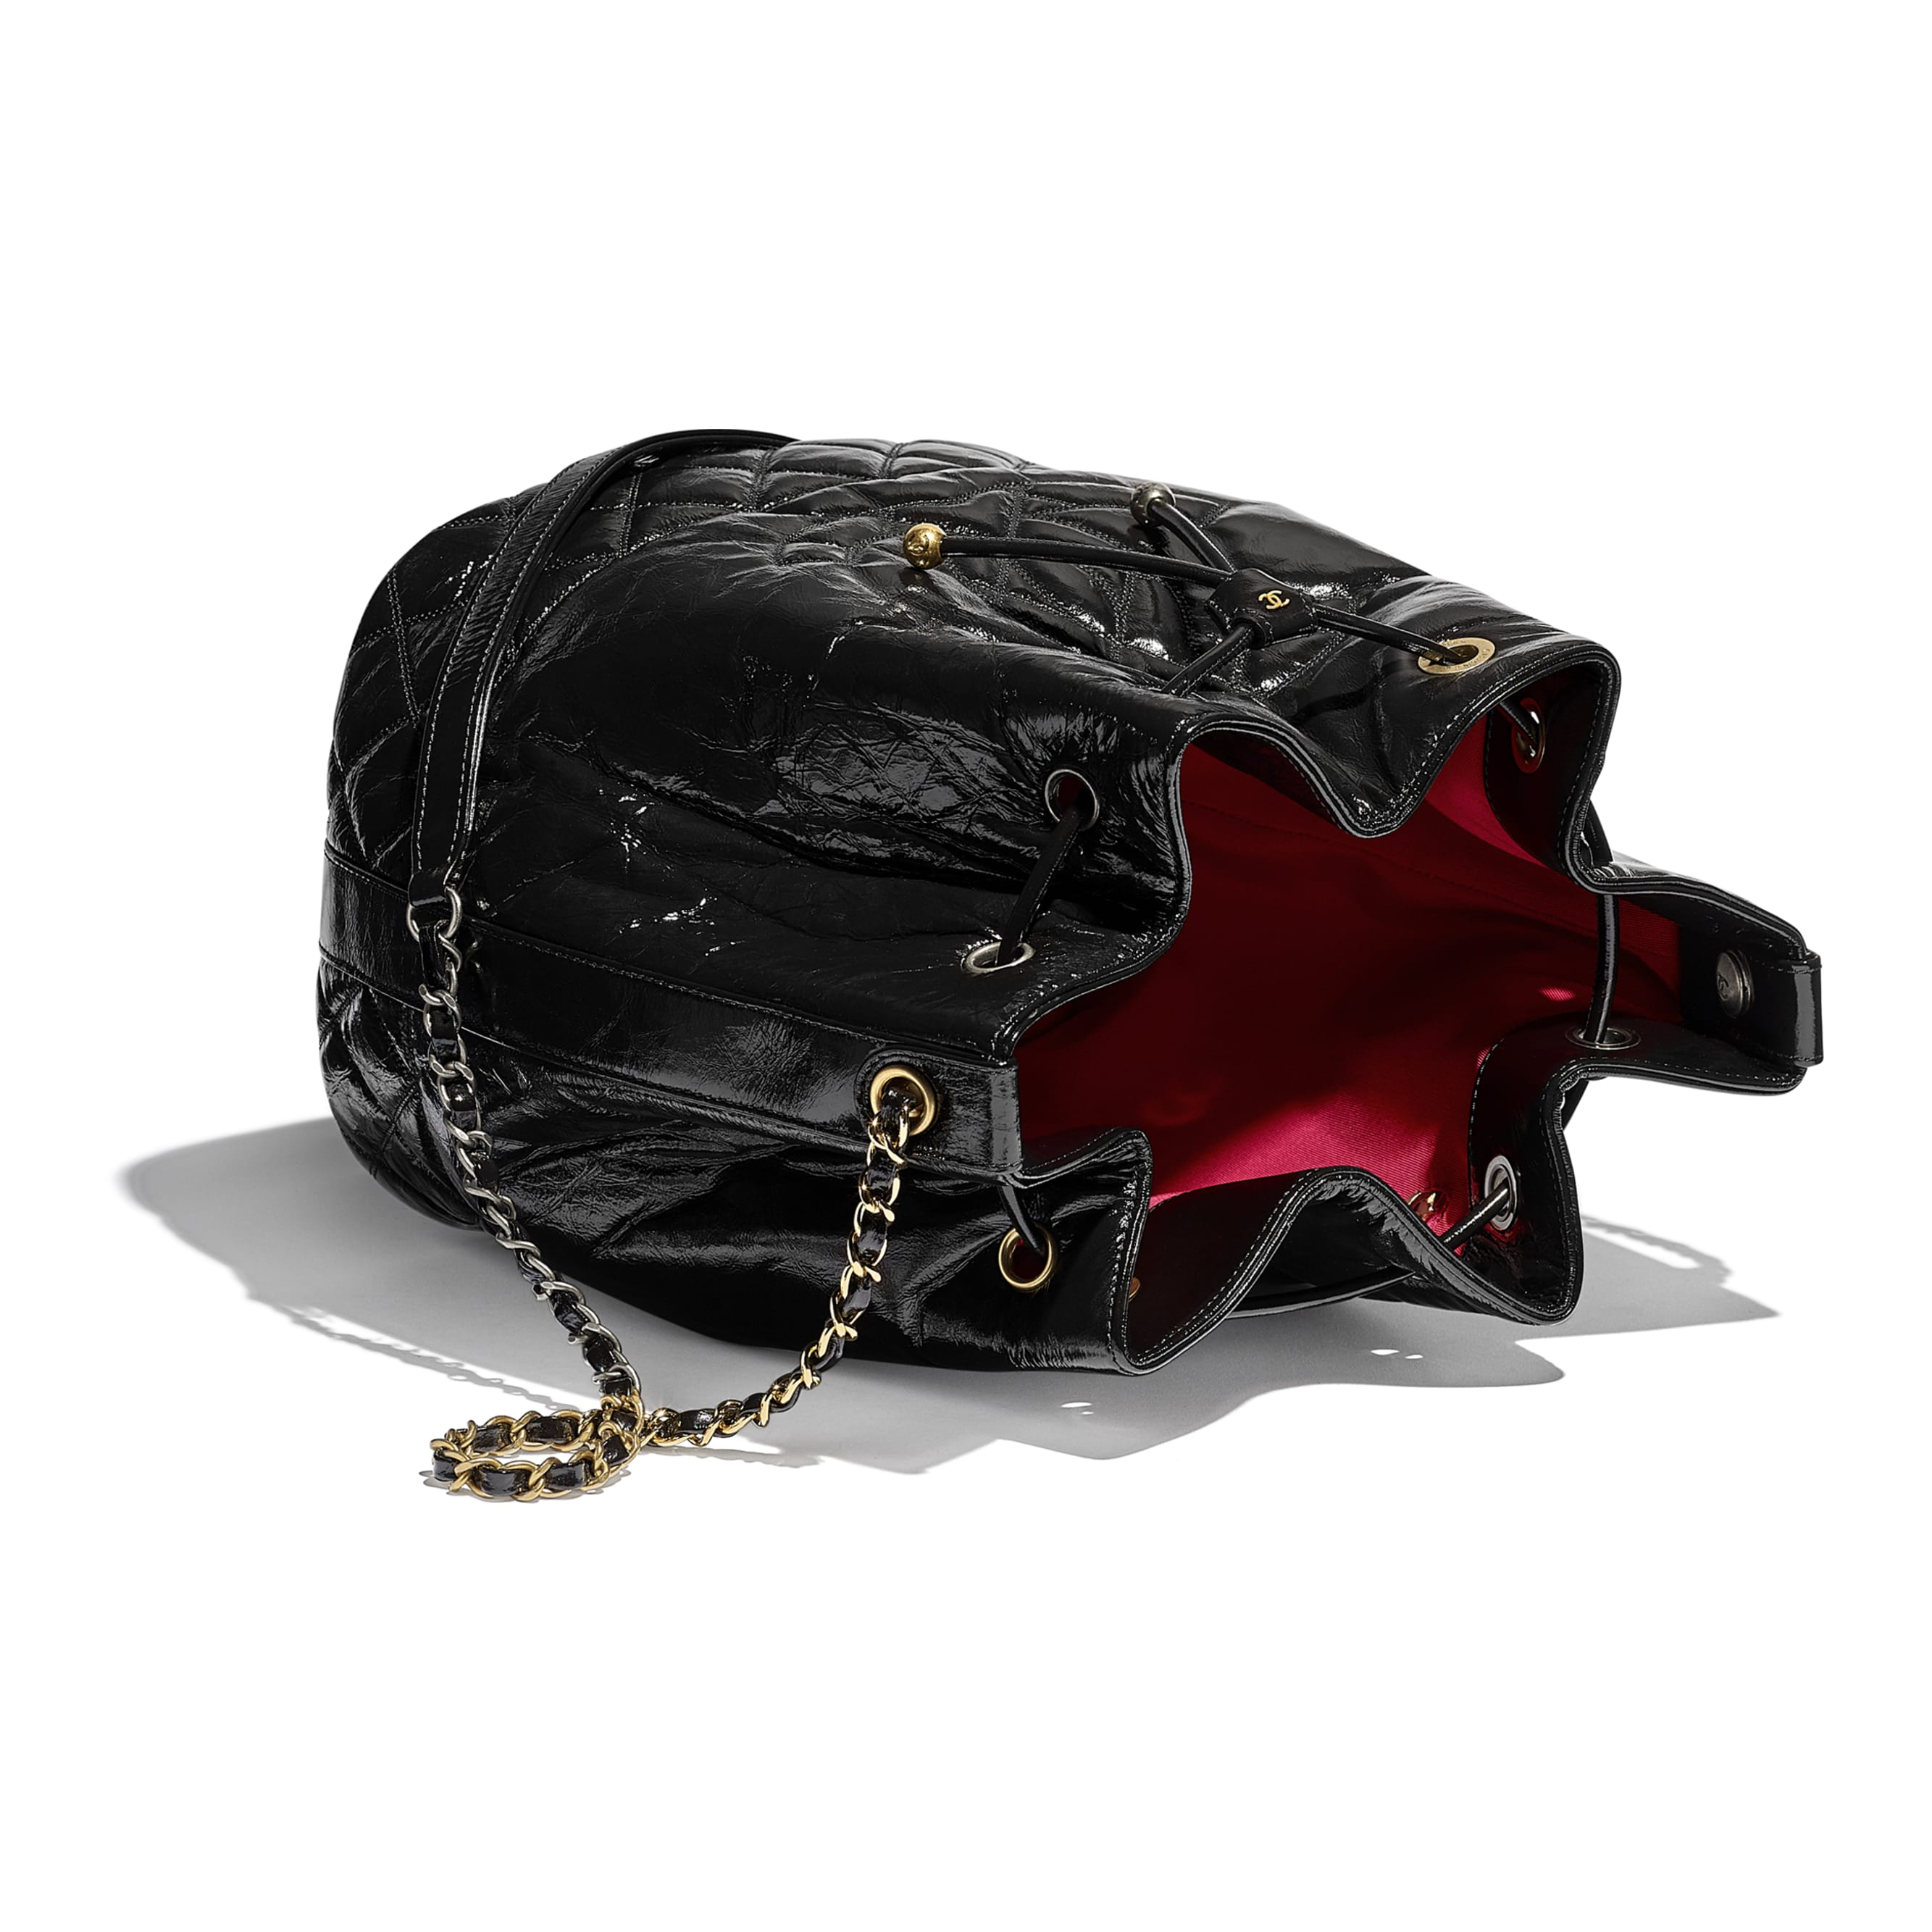 Large Drawstring Bag - Black - Shiny Aged Calfskin, Gold-Tone, Silver-Tone & Ruthenium-Finish Metal - CHANEL - Other view - see standard sized version